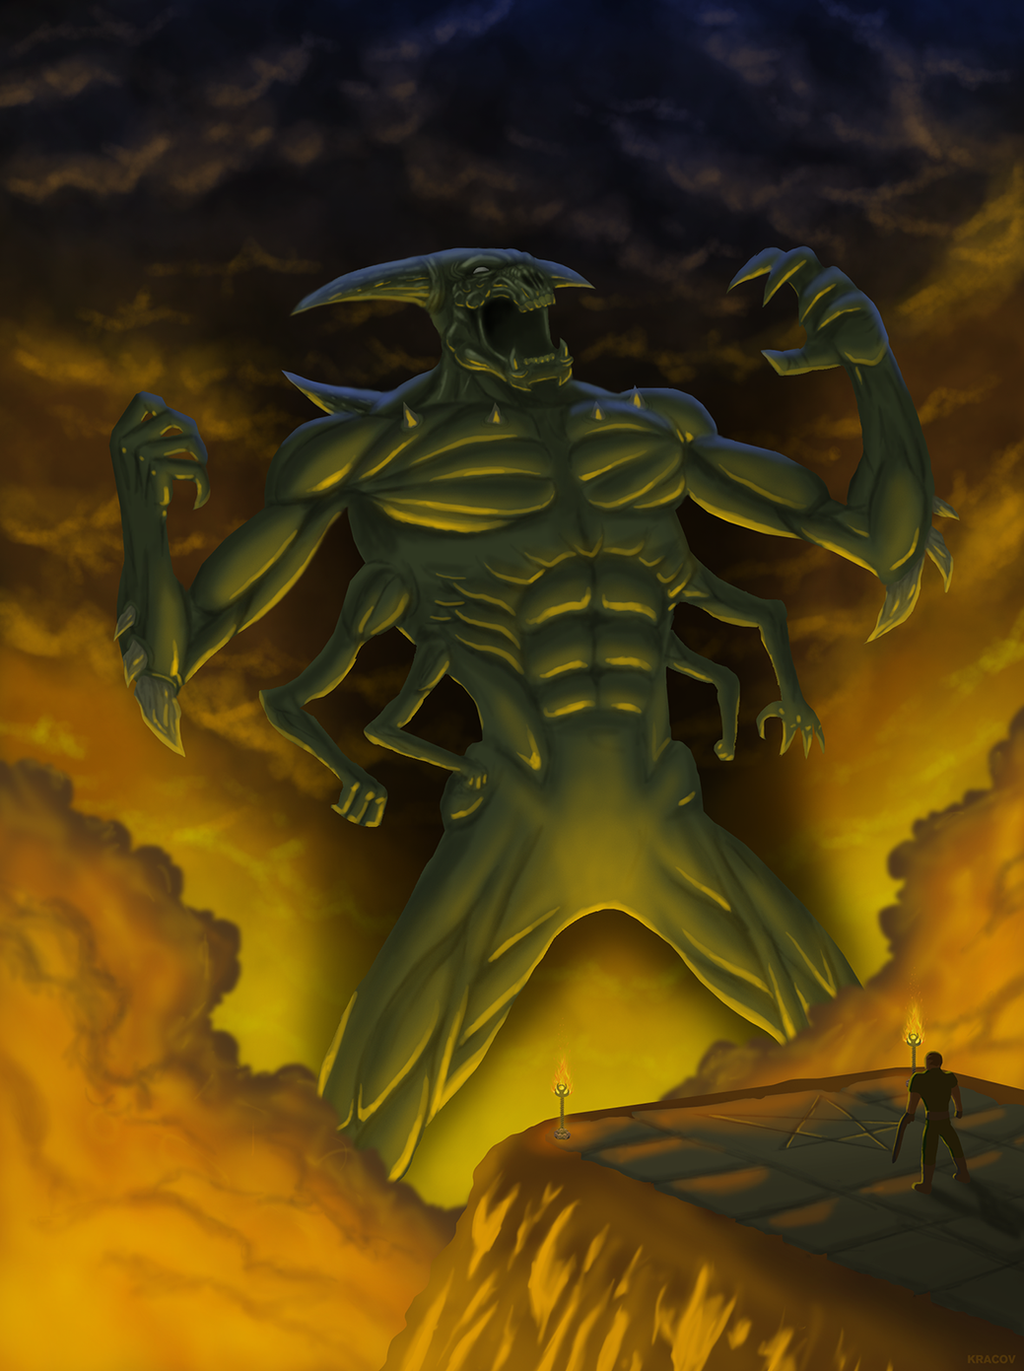 doom__lord_of_sin_by_kracov-d8kidoz.png